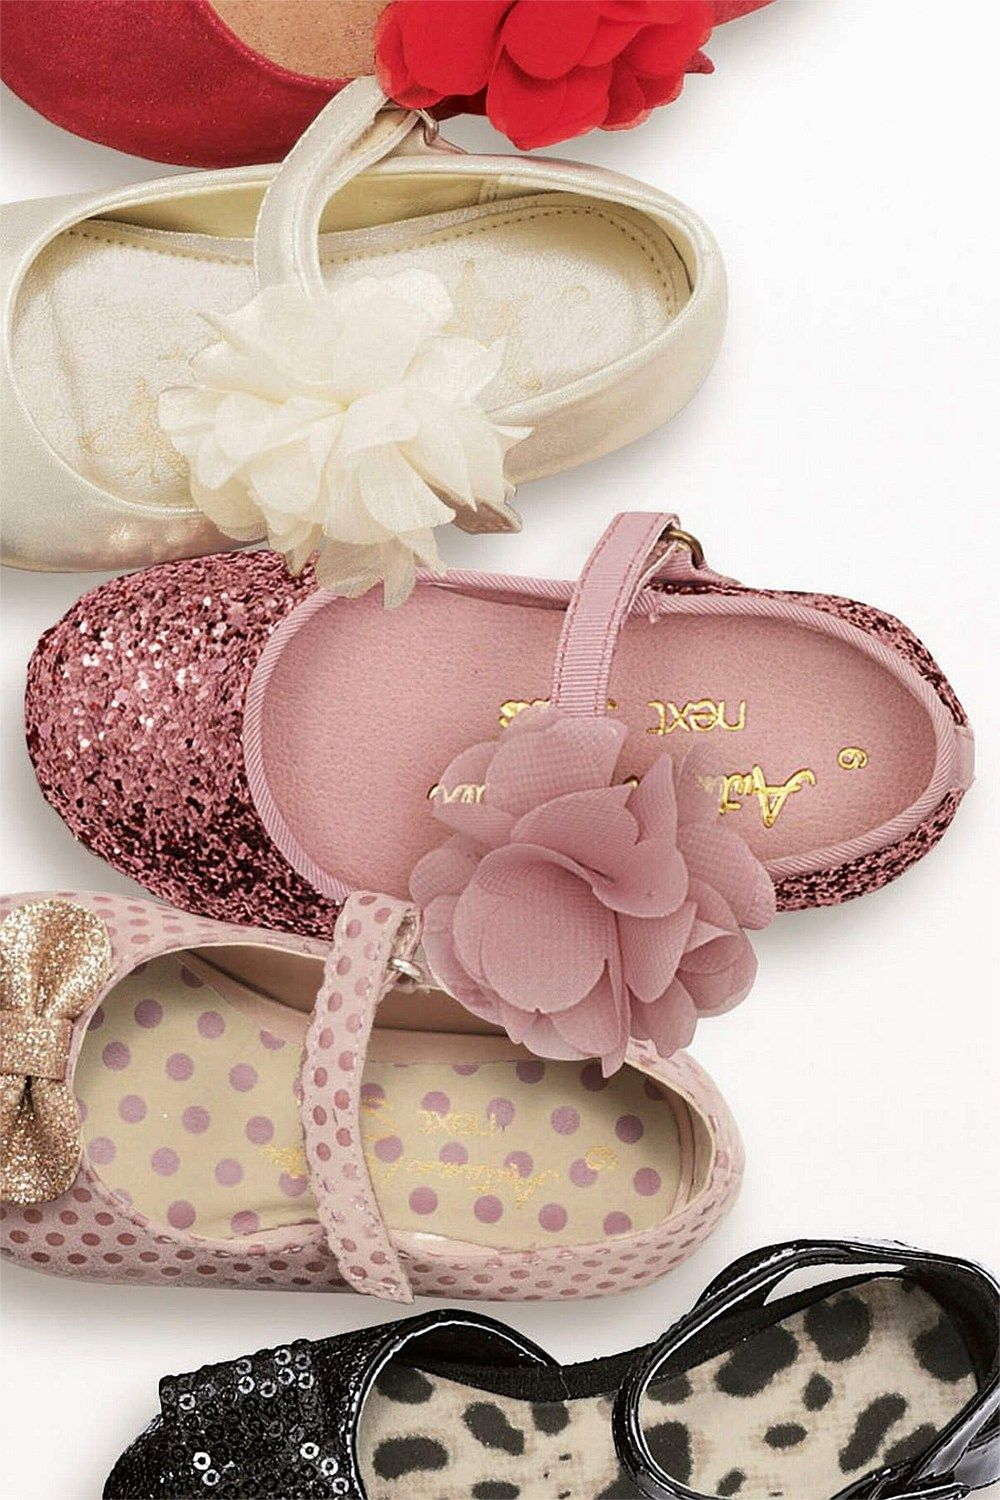 Kid's Clothing - Kidswear and Clothes for Children - Next Corsage Mary Jane Shoes - EziBuy Australia